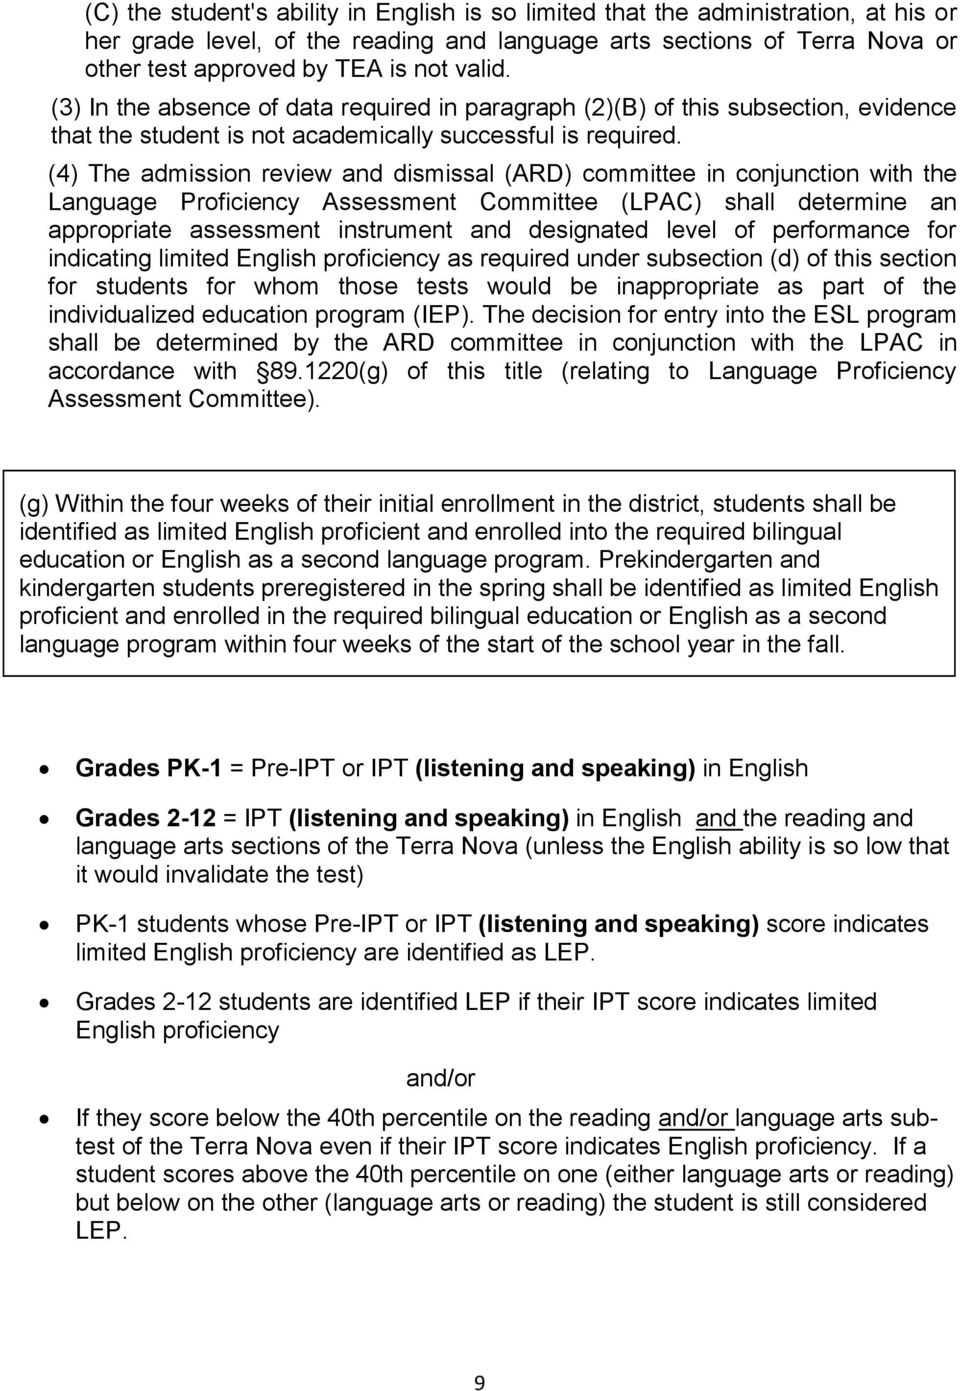 (4) The admission review and dismissal (ARD) committee in conjunction with the Language Proficiency Assessment Committee (LPAC) shall determine an appropriate assessment instrument and designated